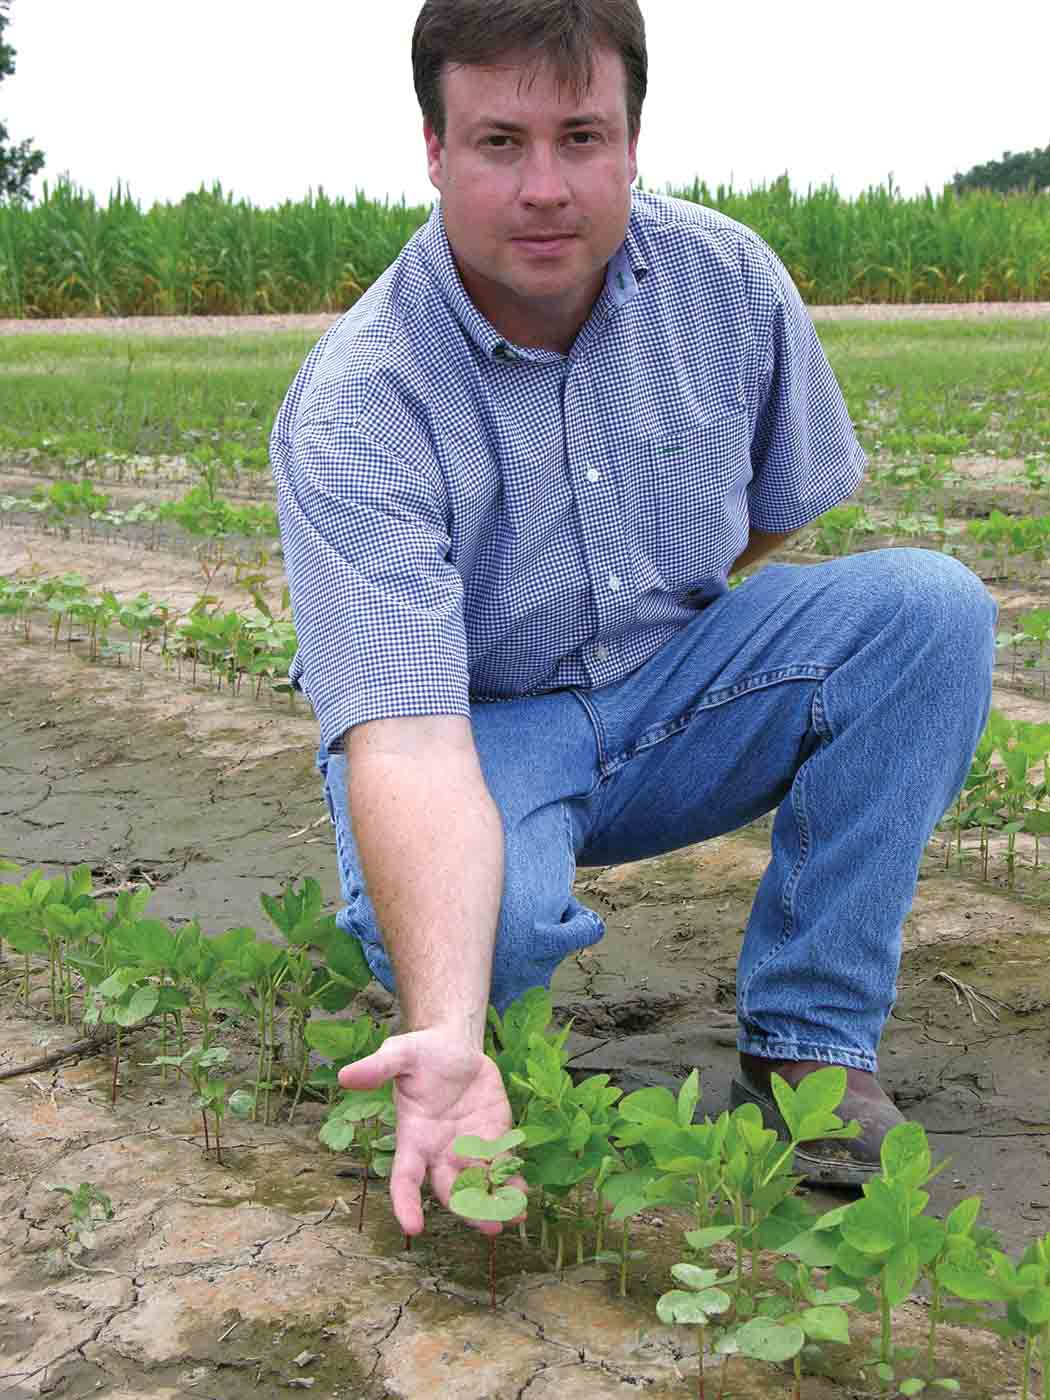 When Crops Become Weeds: Control Strategies